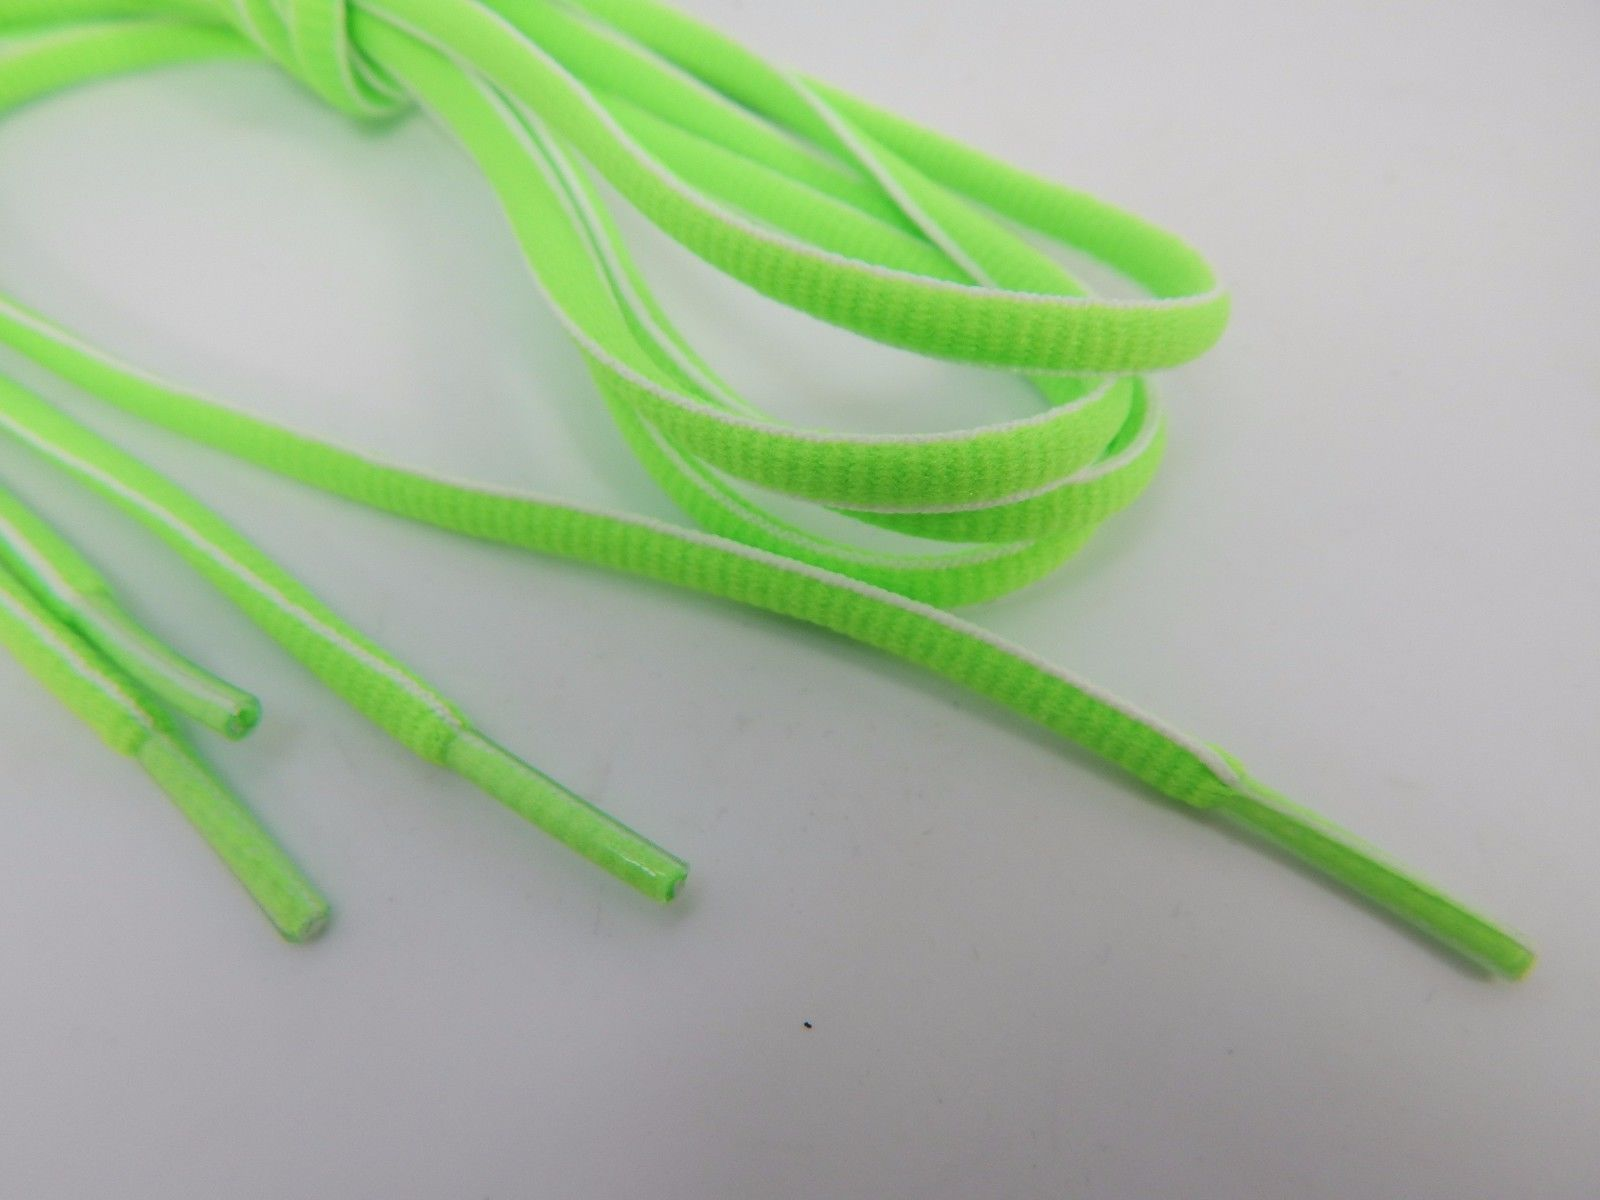 """Green White Round Athletic Shoe Laces 54"""" inches will work for 8 pair of eyelets"""